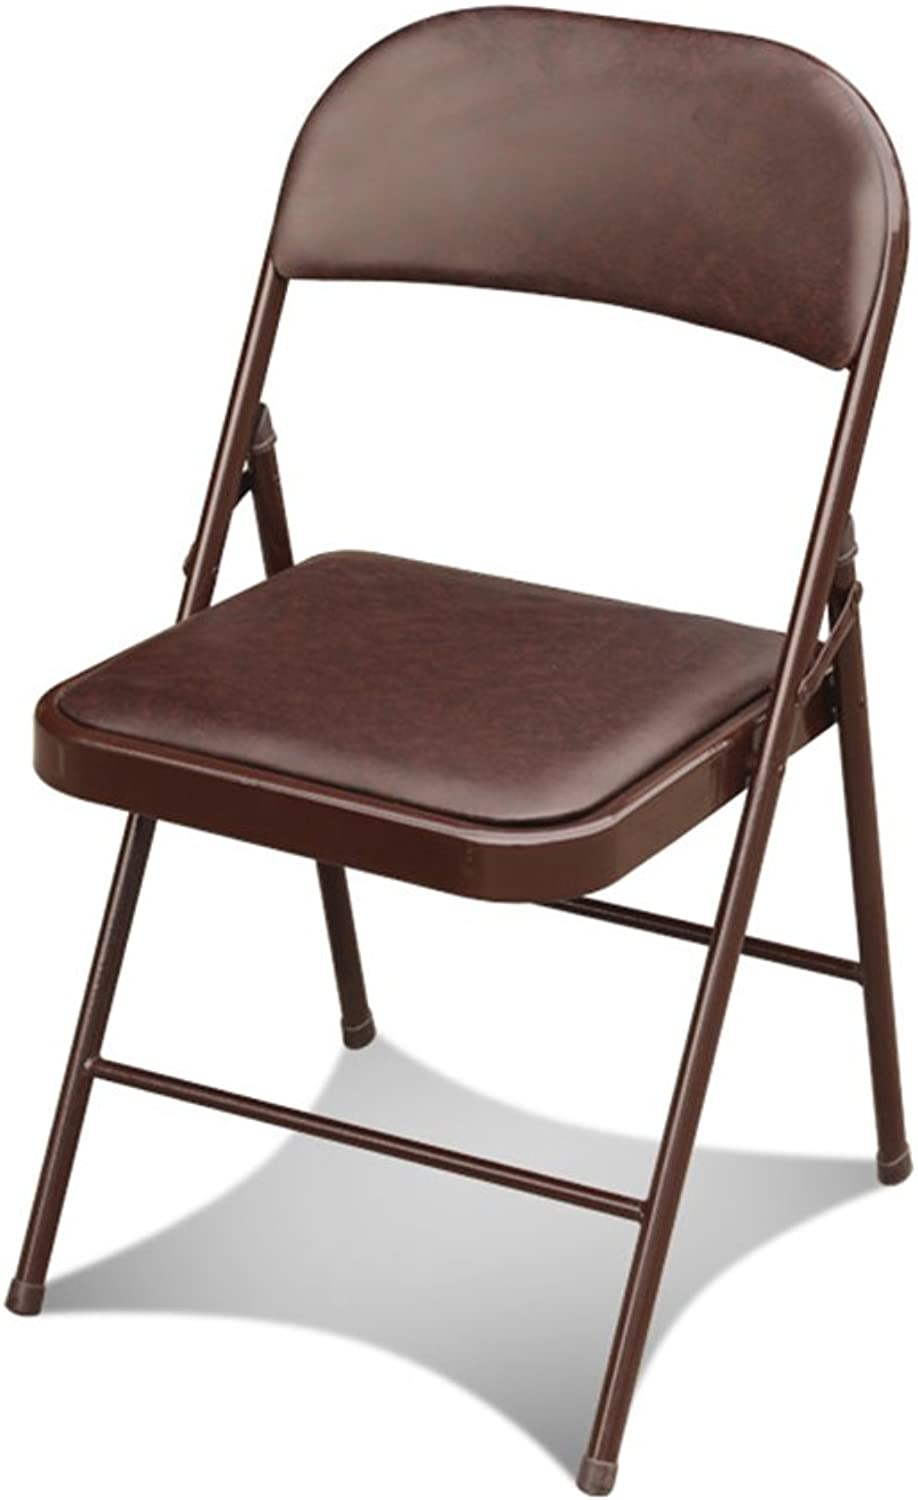 YAXIAO-Folding chair Office Folding Chair Office Chair Folding Chair (color   2)